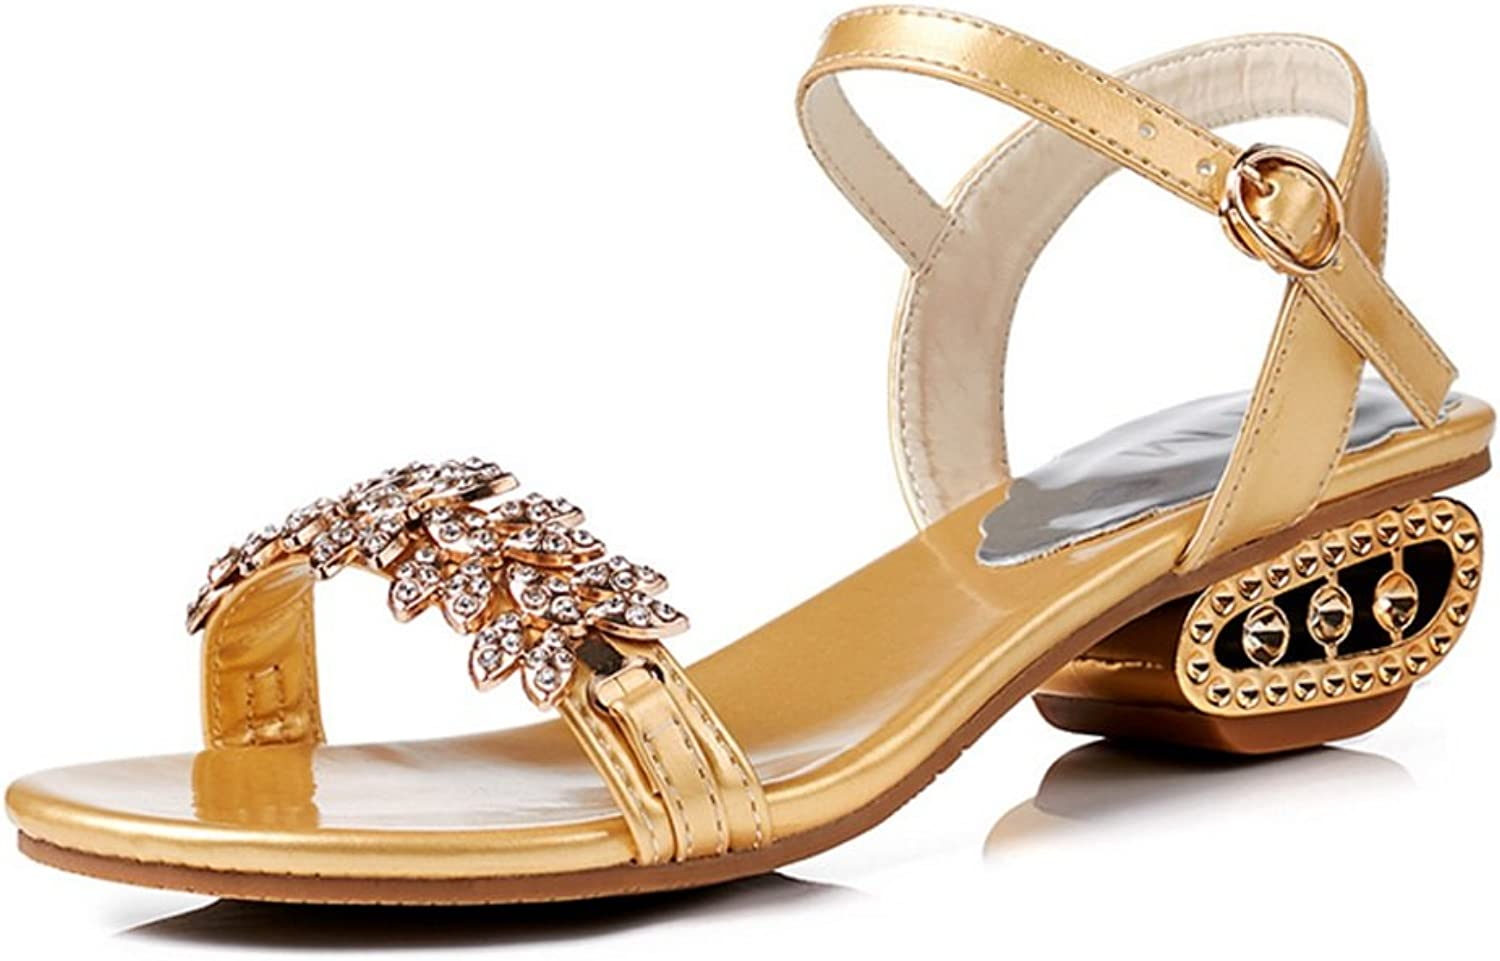 LZWSMGS Women's shoes Crystal Summer Club shoes Sandals Chunky Heel Casual Evening Dress Party Dinner gold Silver Black 34-40cm Ladies Sandals (color   gold, Size   5.5 US)